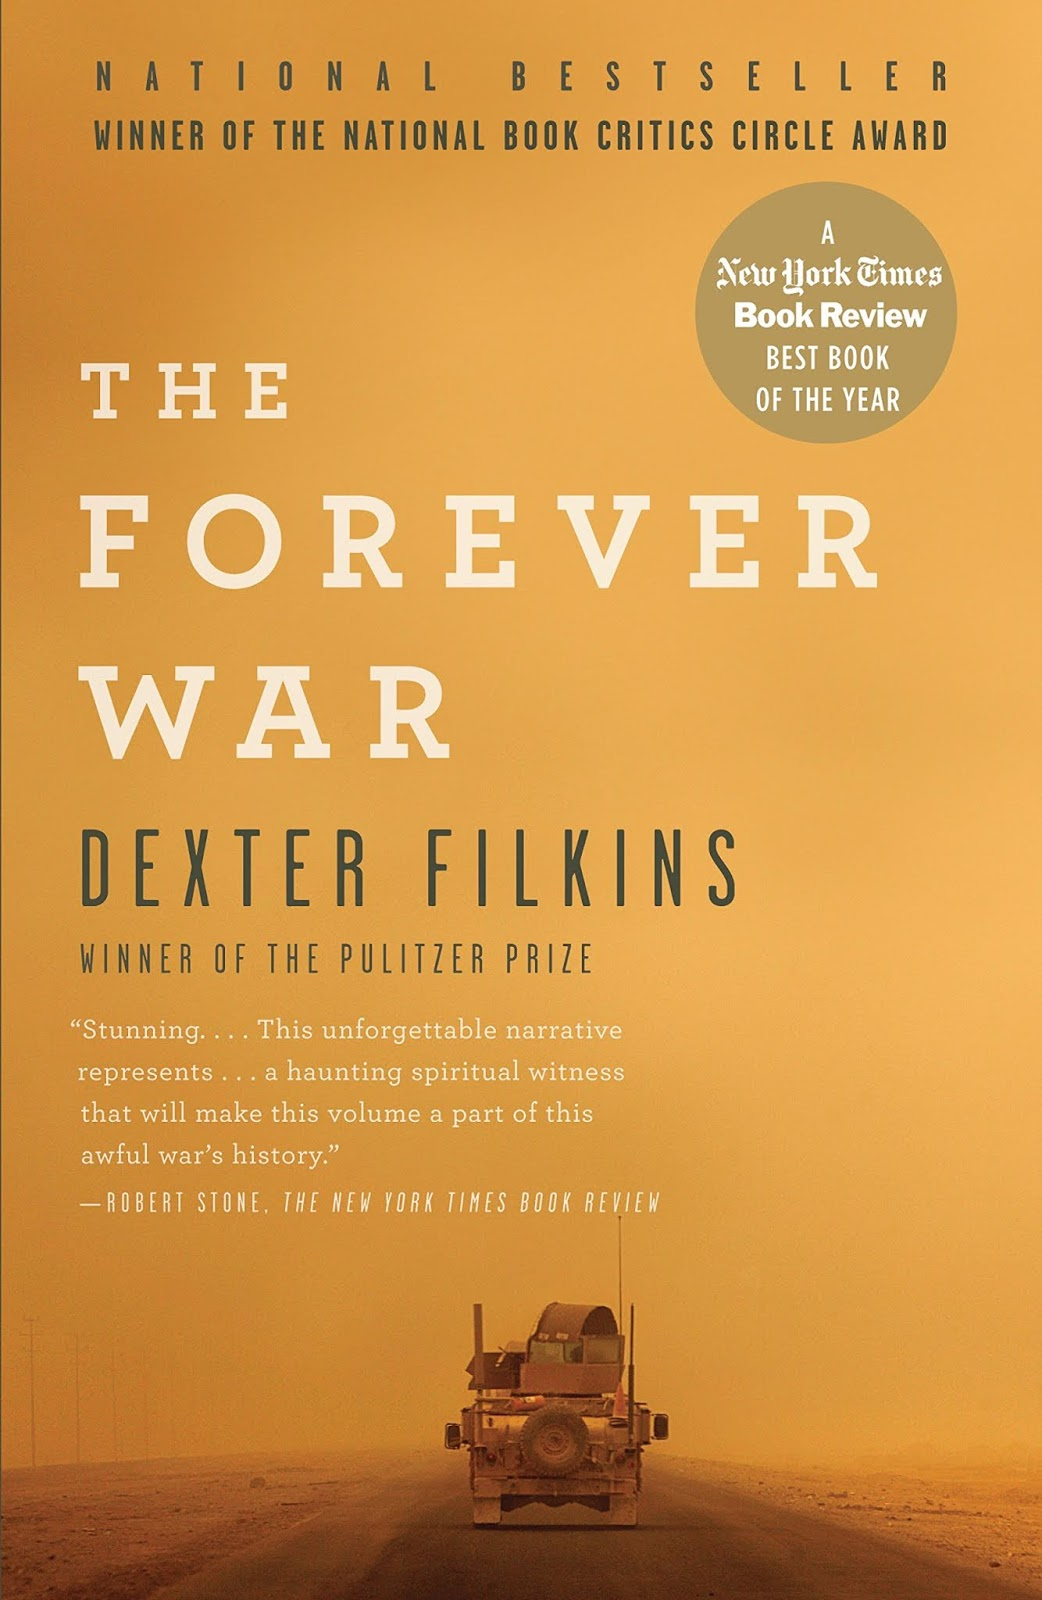 The cover of The Forever War.